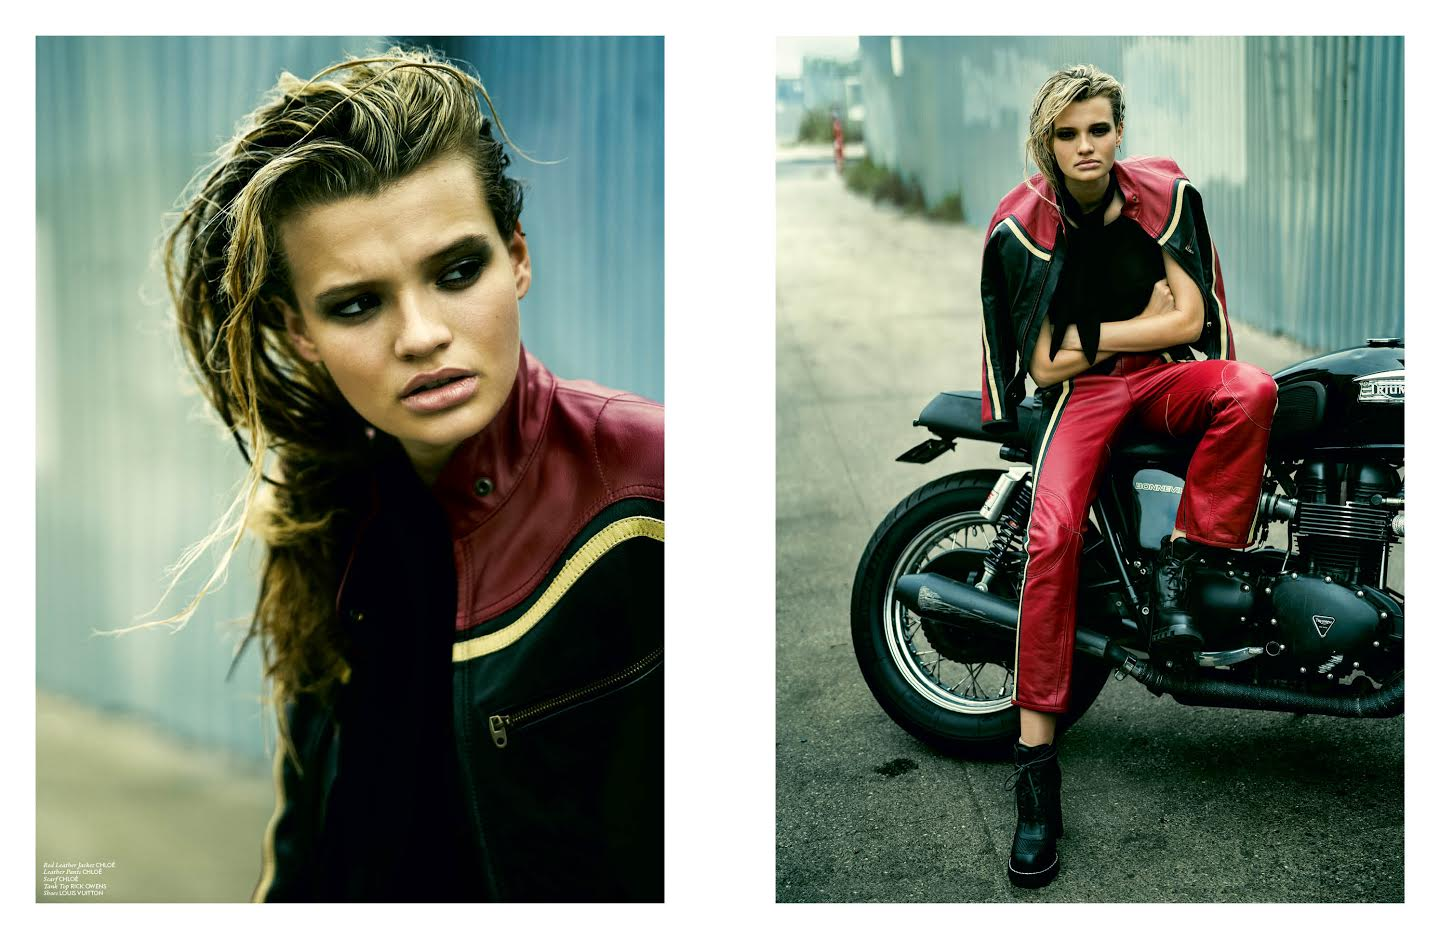 Lone Rider Cayley King By Patric Shaw For The Impression